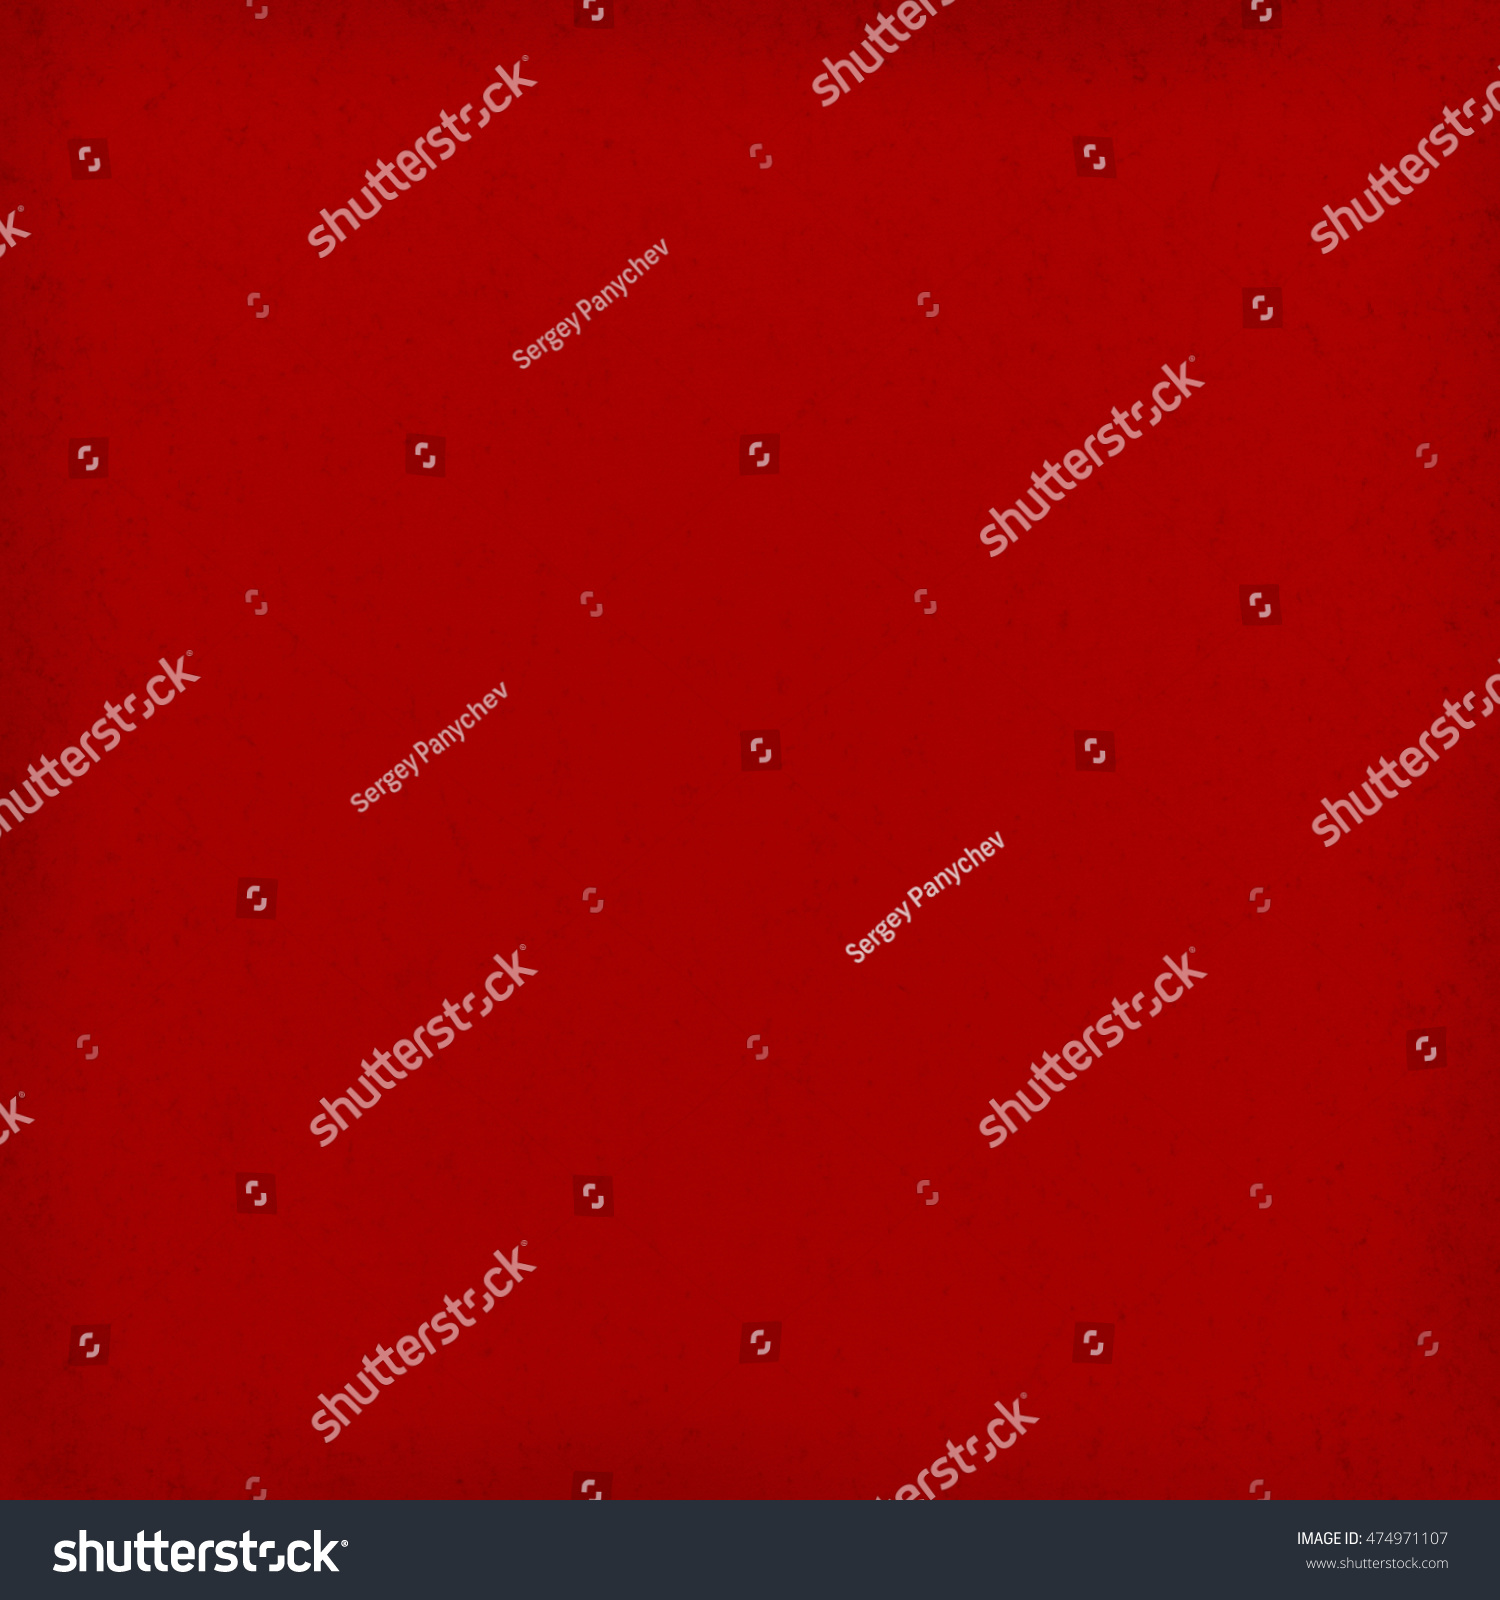 Abstract Red Background Paper Texture Design Template Ez Canvas